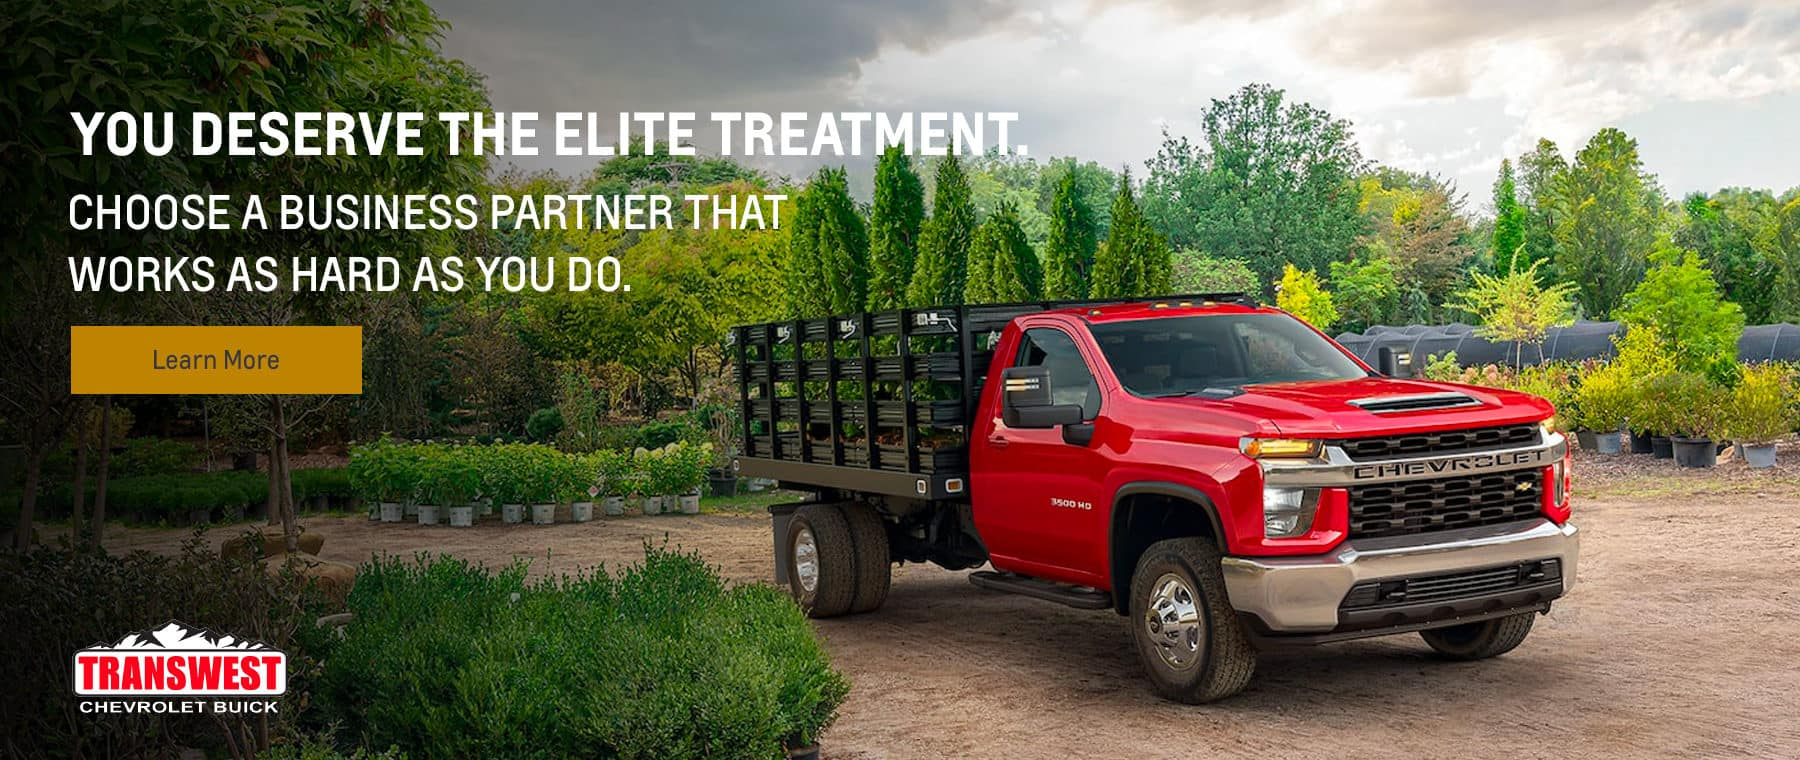 You Deserve the Elite Treatment Choose A Business Partner That Works As Hard As You Do.